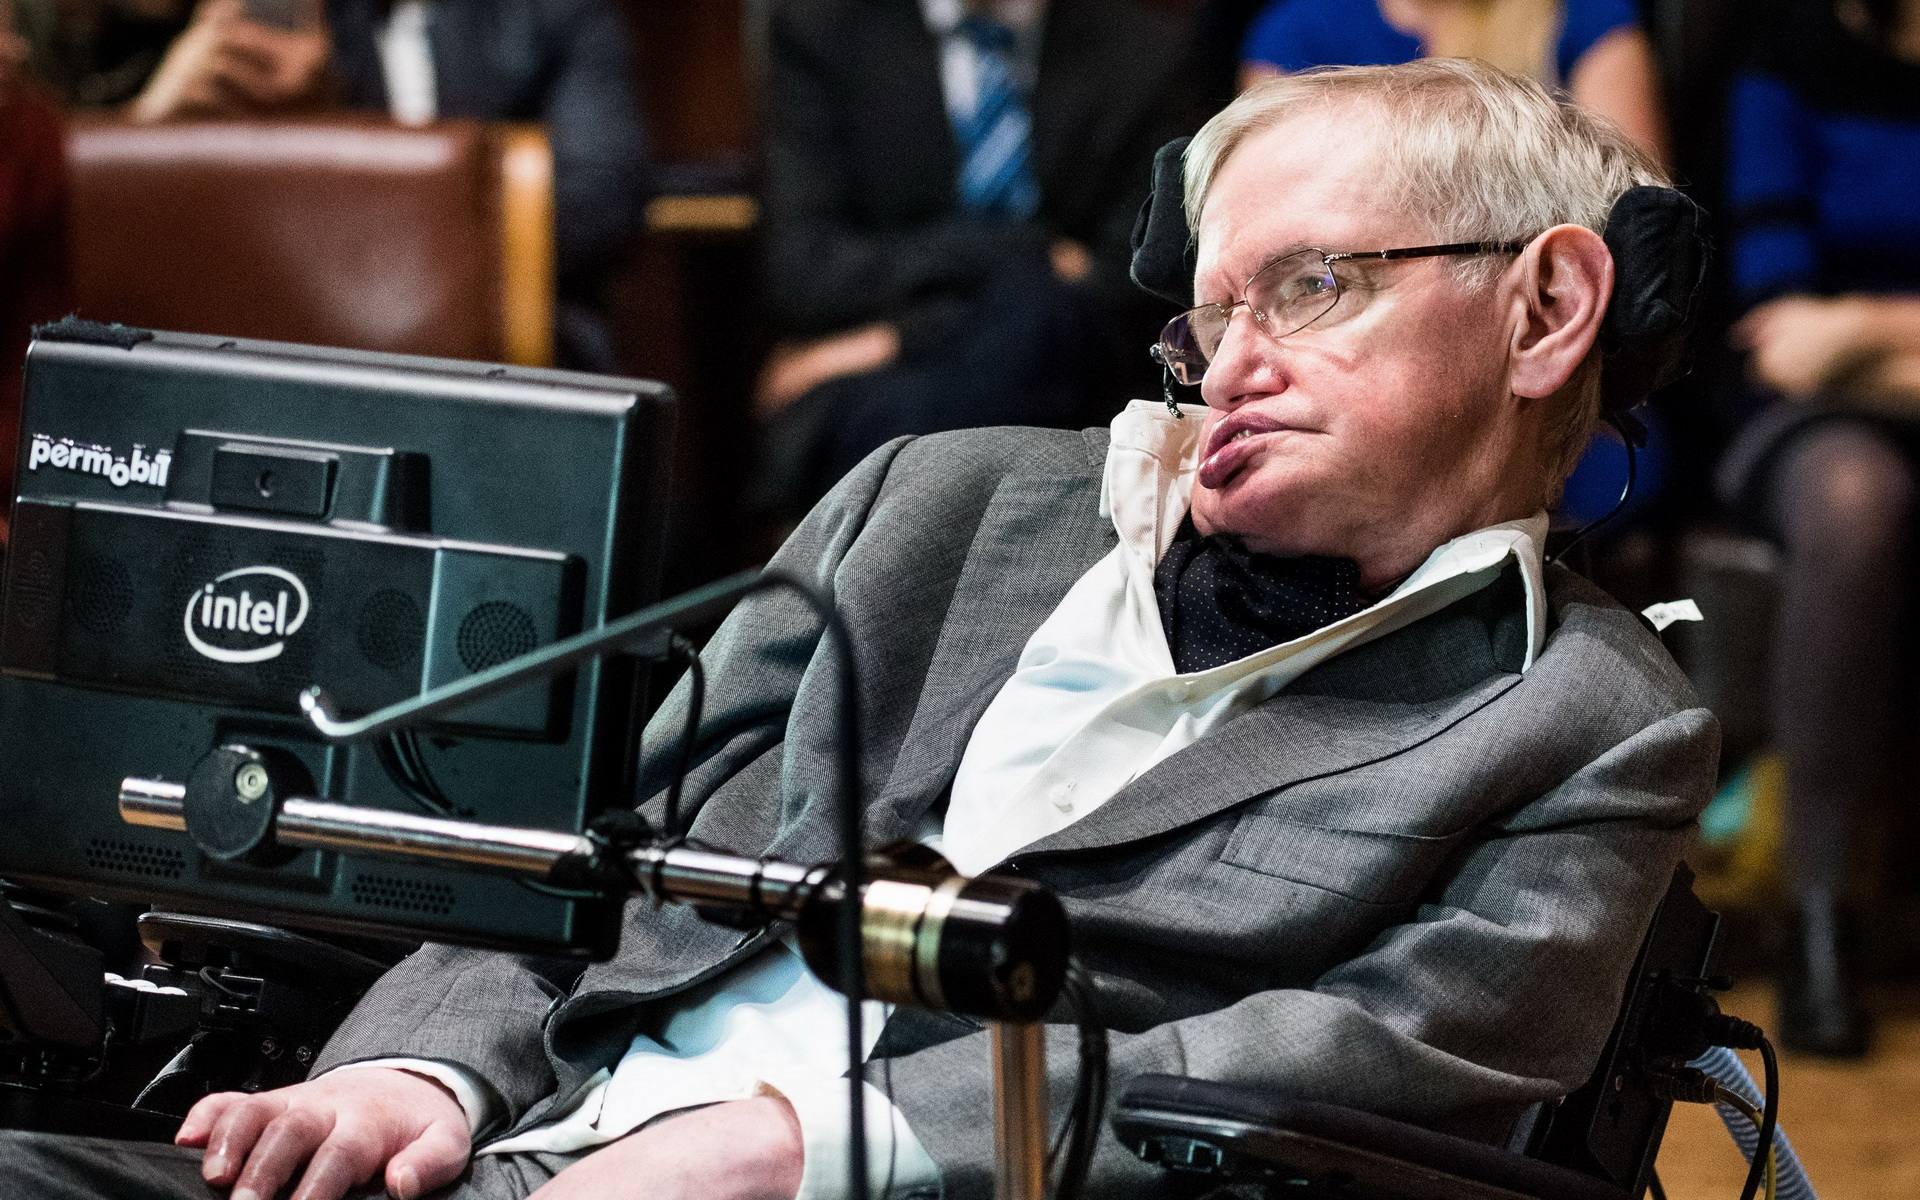 Stephen Hawking: I am convinced that mankind must leave Earth